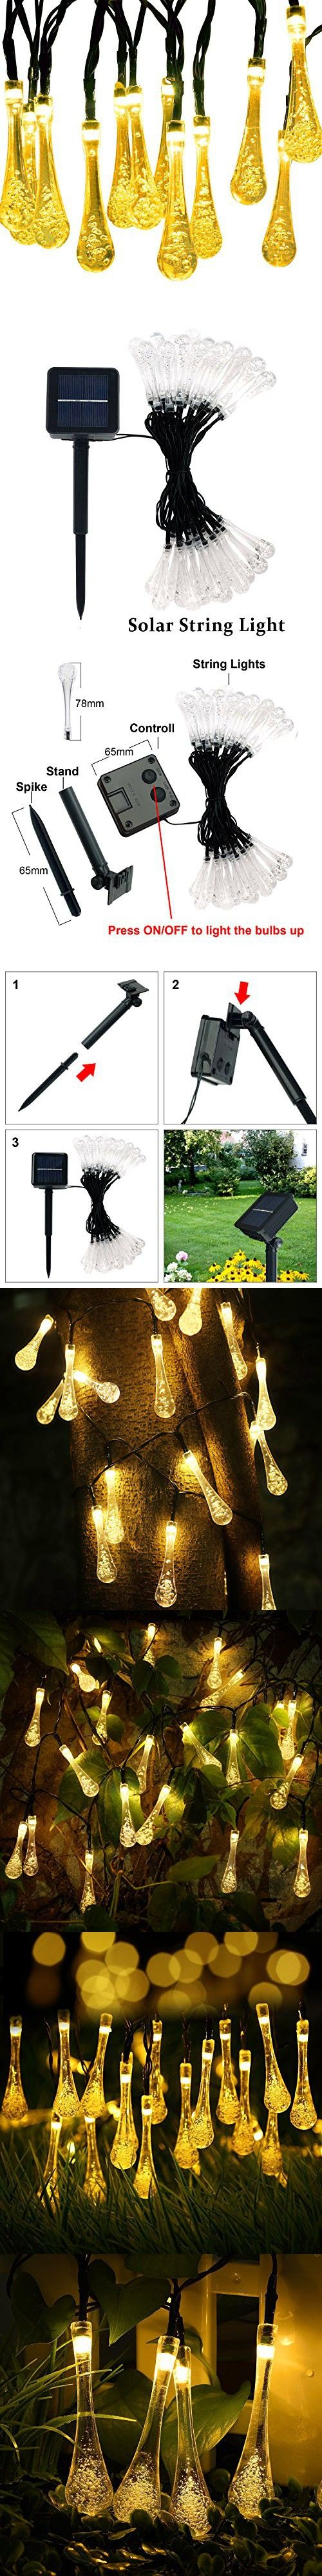 Solar Outdoor String Lights, CREATIVE DESIGN Water Drop Solar String Fairy Lights, 17.4ft 30LEDs Starry Light Ambiance Lighting for Christmas, Party, Wedding, Garden (8 Modes 30LEDS) (Warm White)